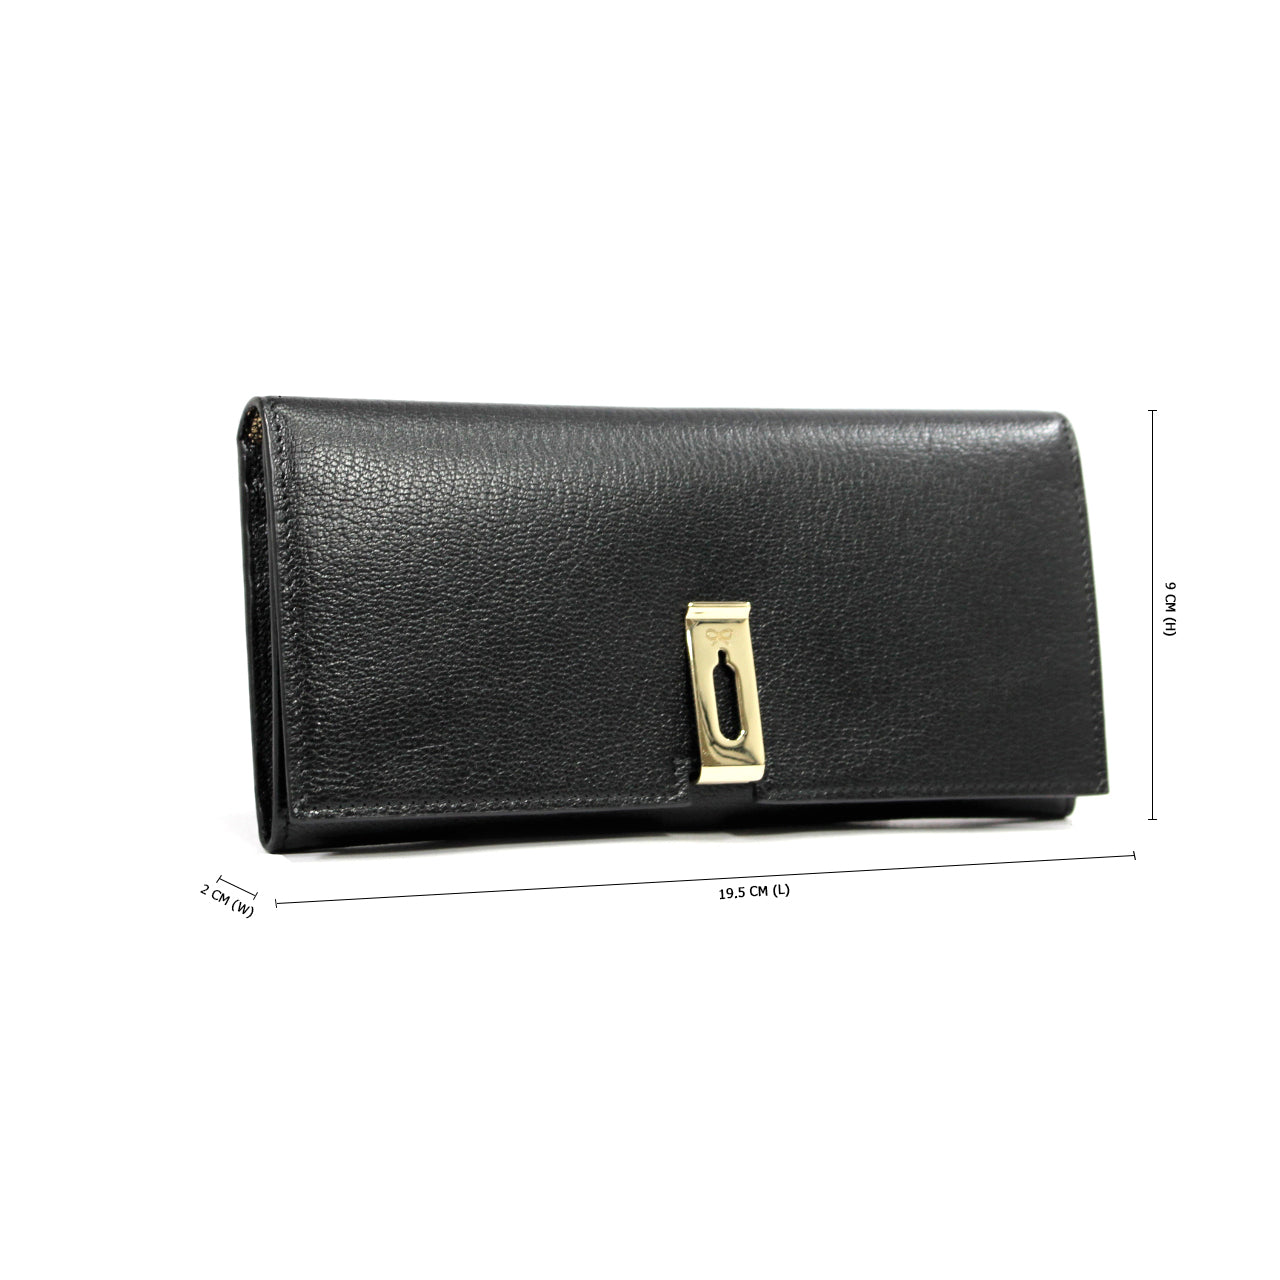 Anya Hindmarch Albion Wallet